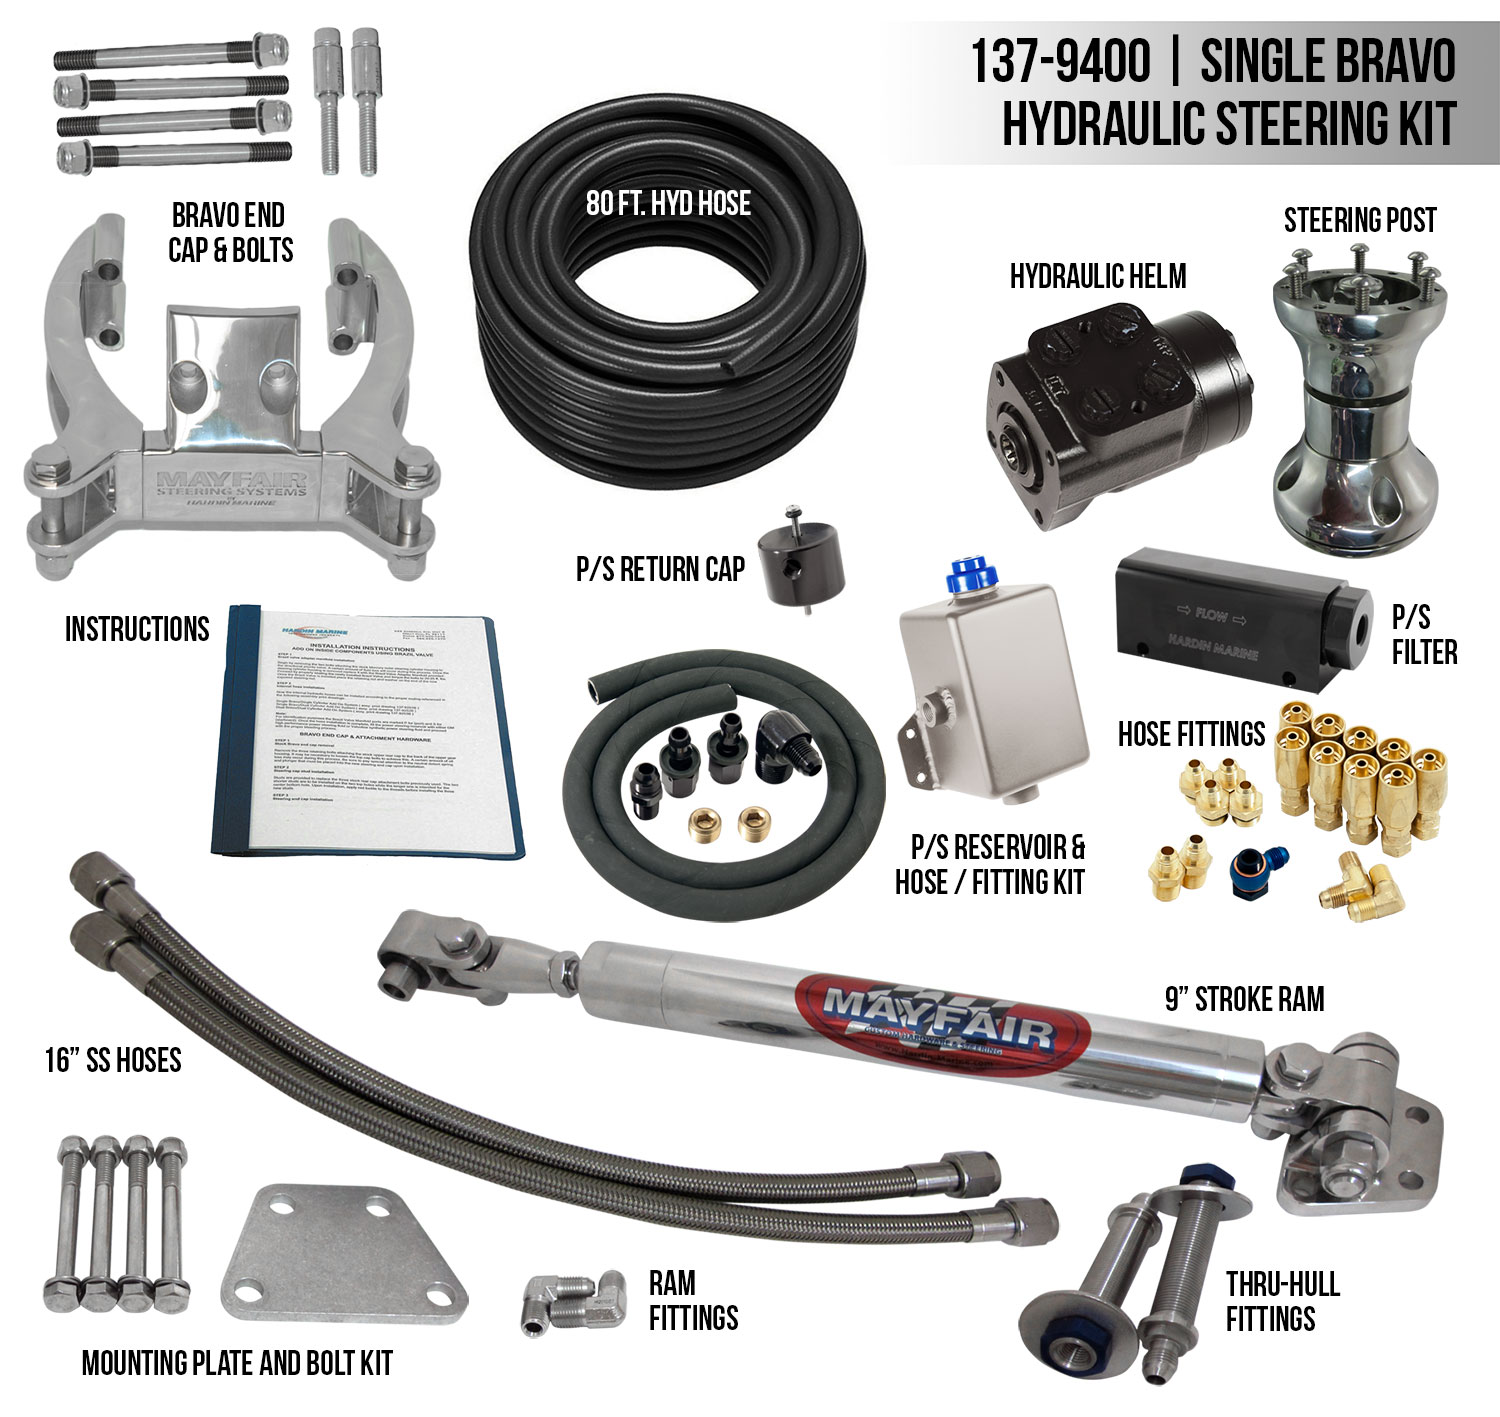 Mayfair Single Bravo Ram Full Hydraulic Steering Kit Cp Performance